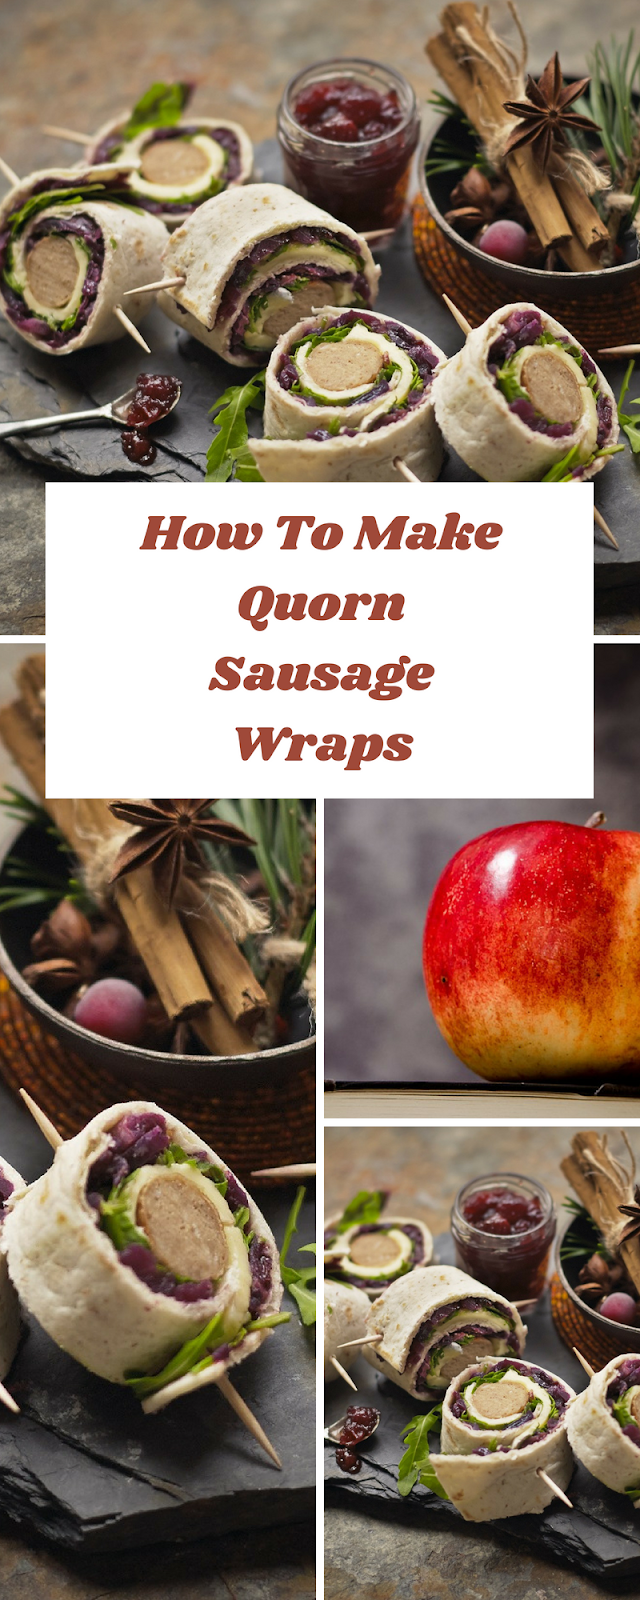 How To Make Quorn Sausage Wraps